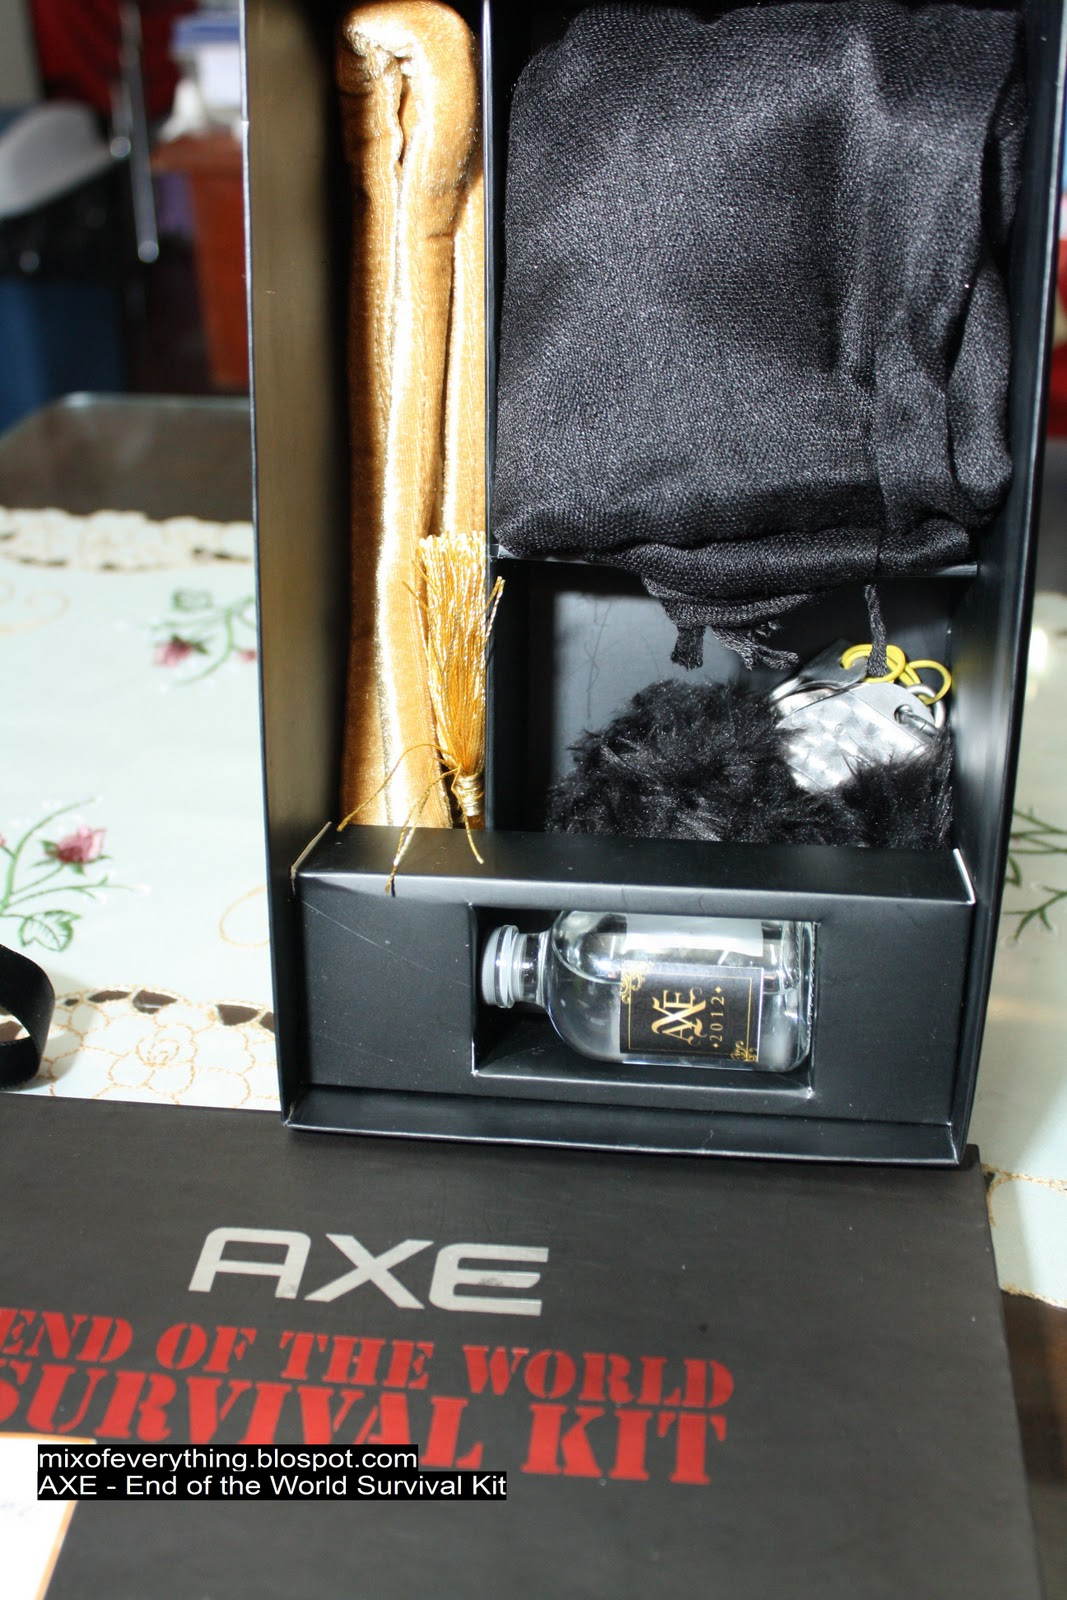 axe happy end of the world survival kit hello welcome to my blog